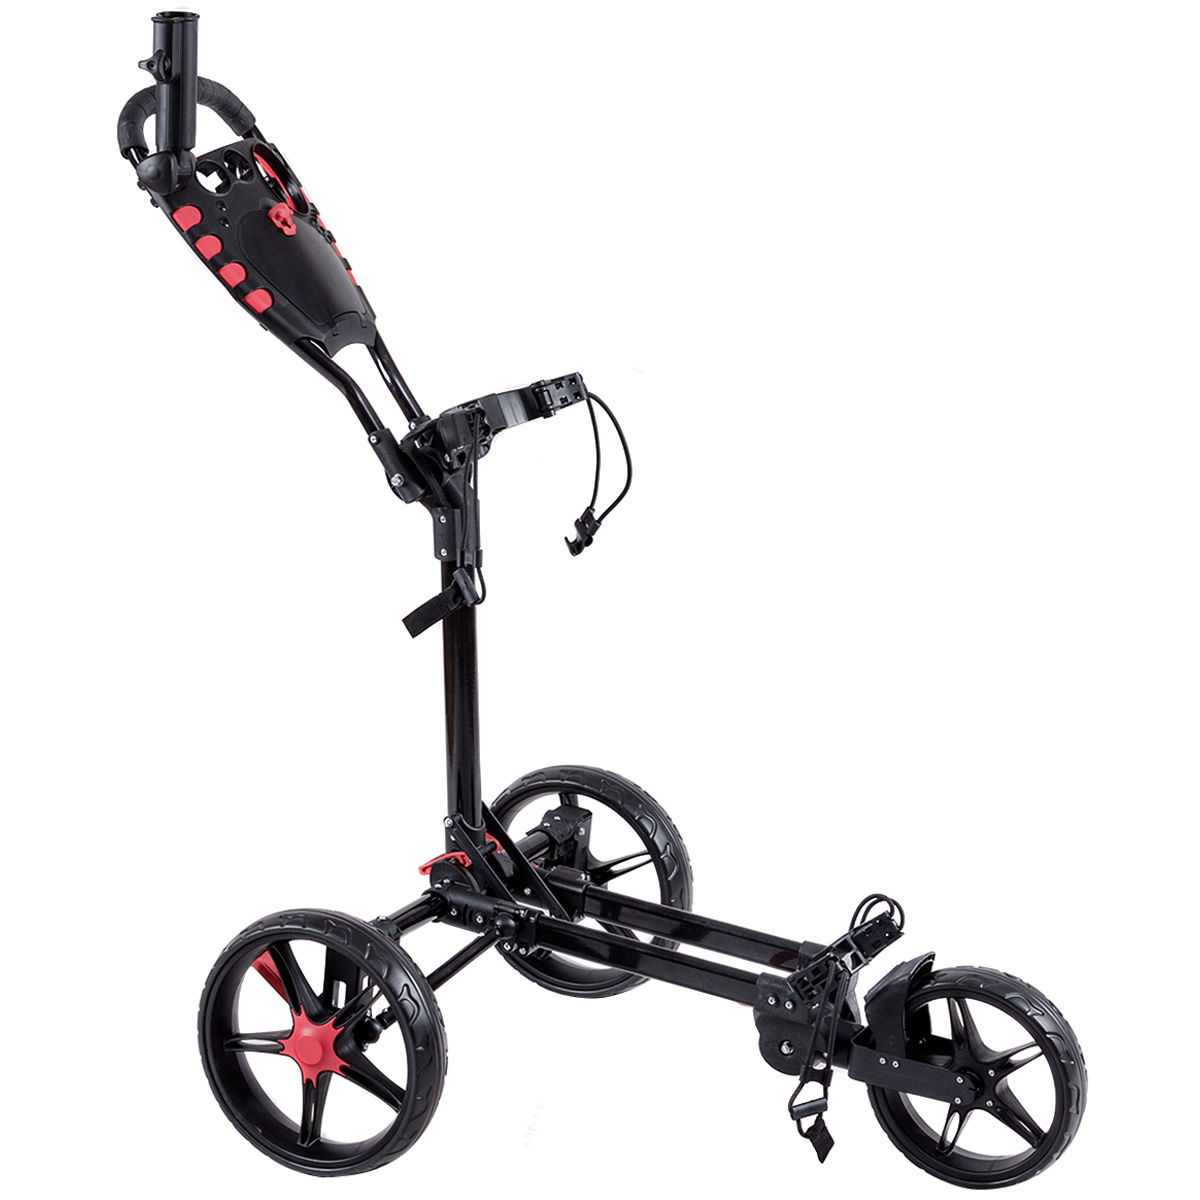 Costway Lightweight Foldable 3 Wheel Golf Pull Push Cart Trolley Club w/ Umbrella Holder